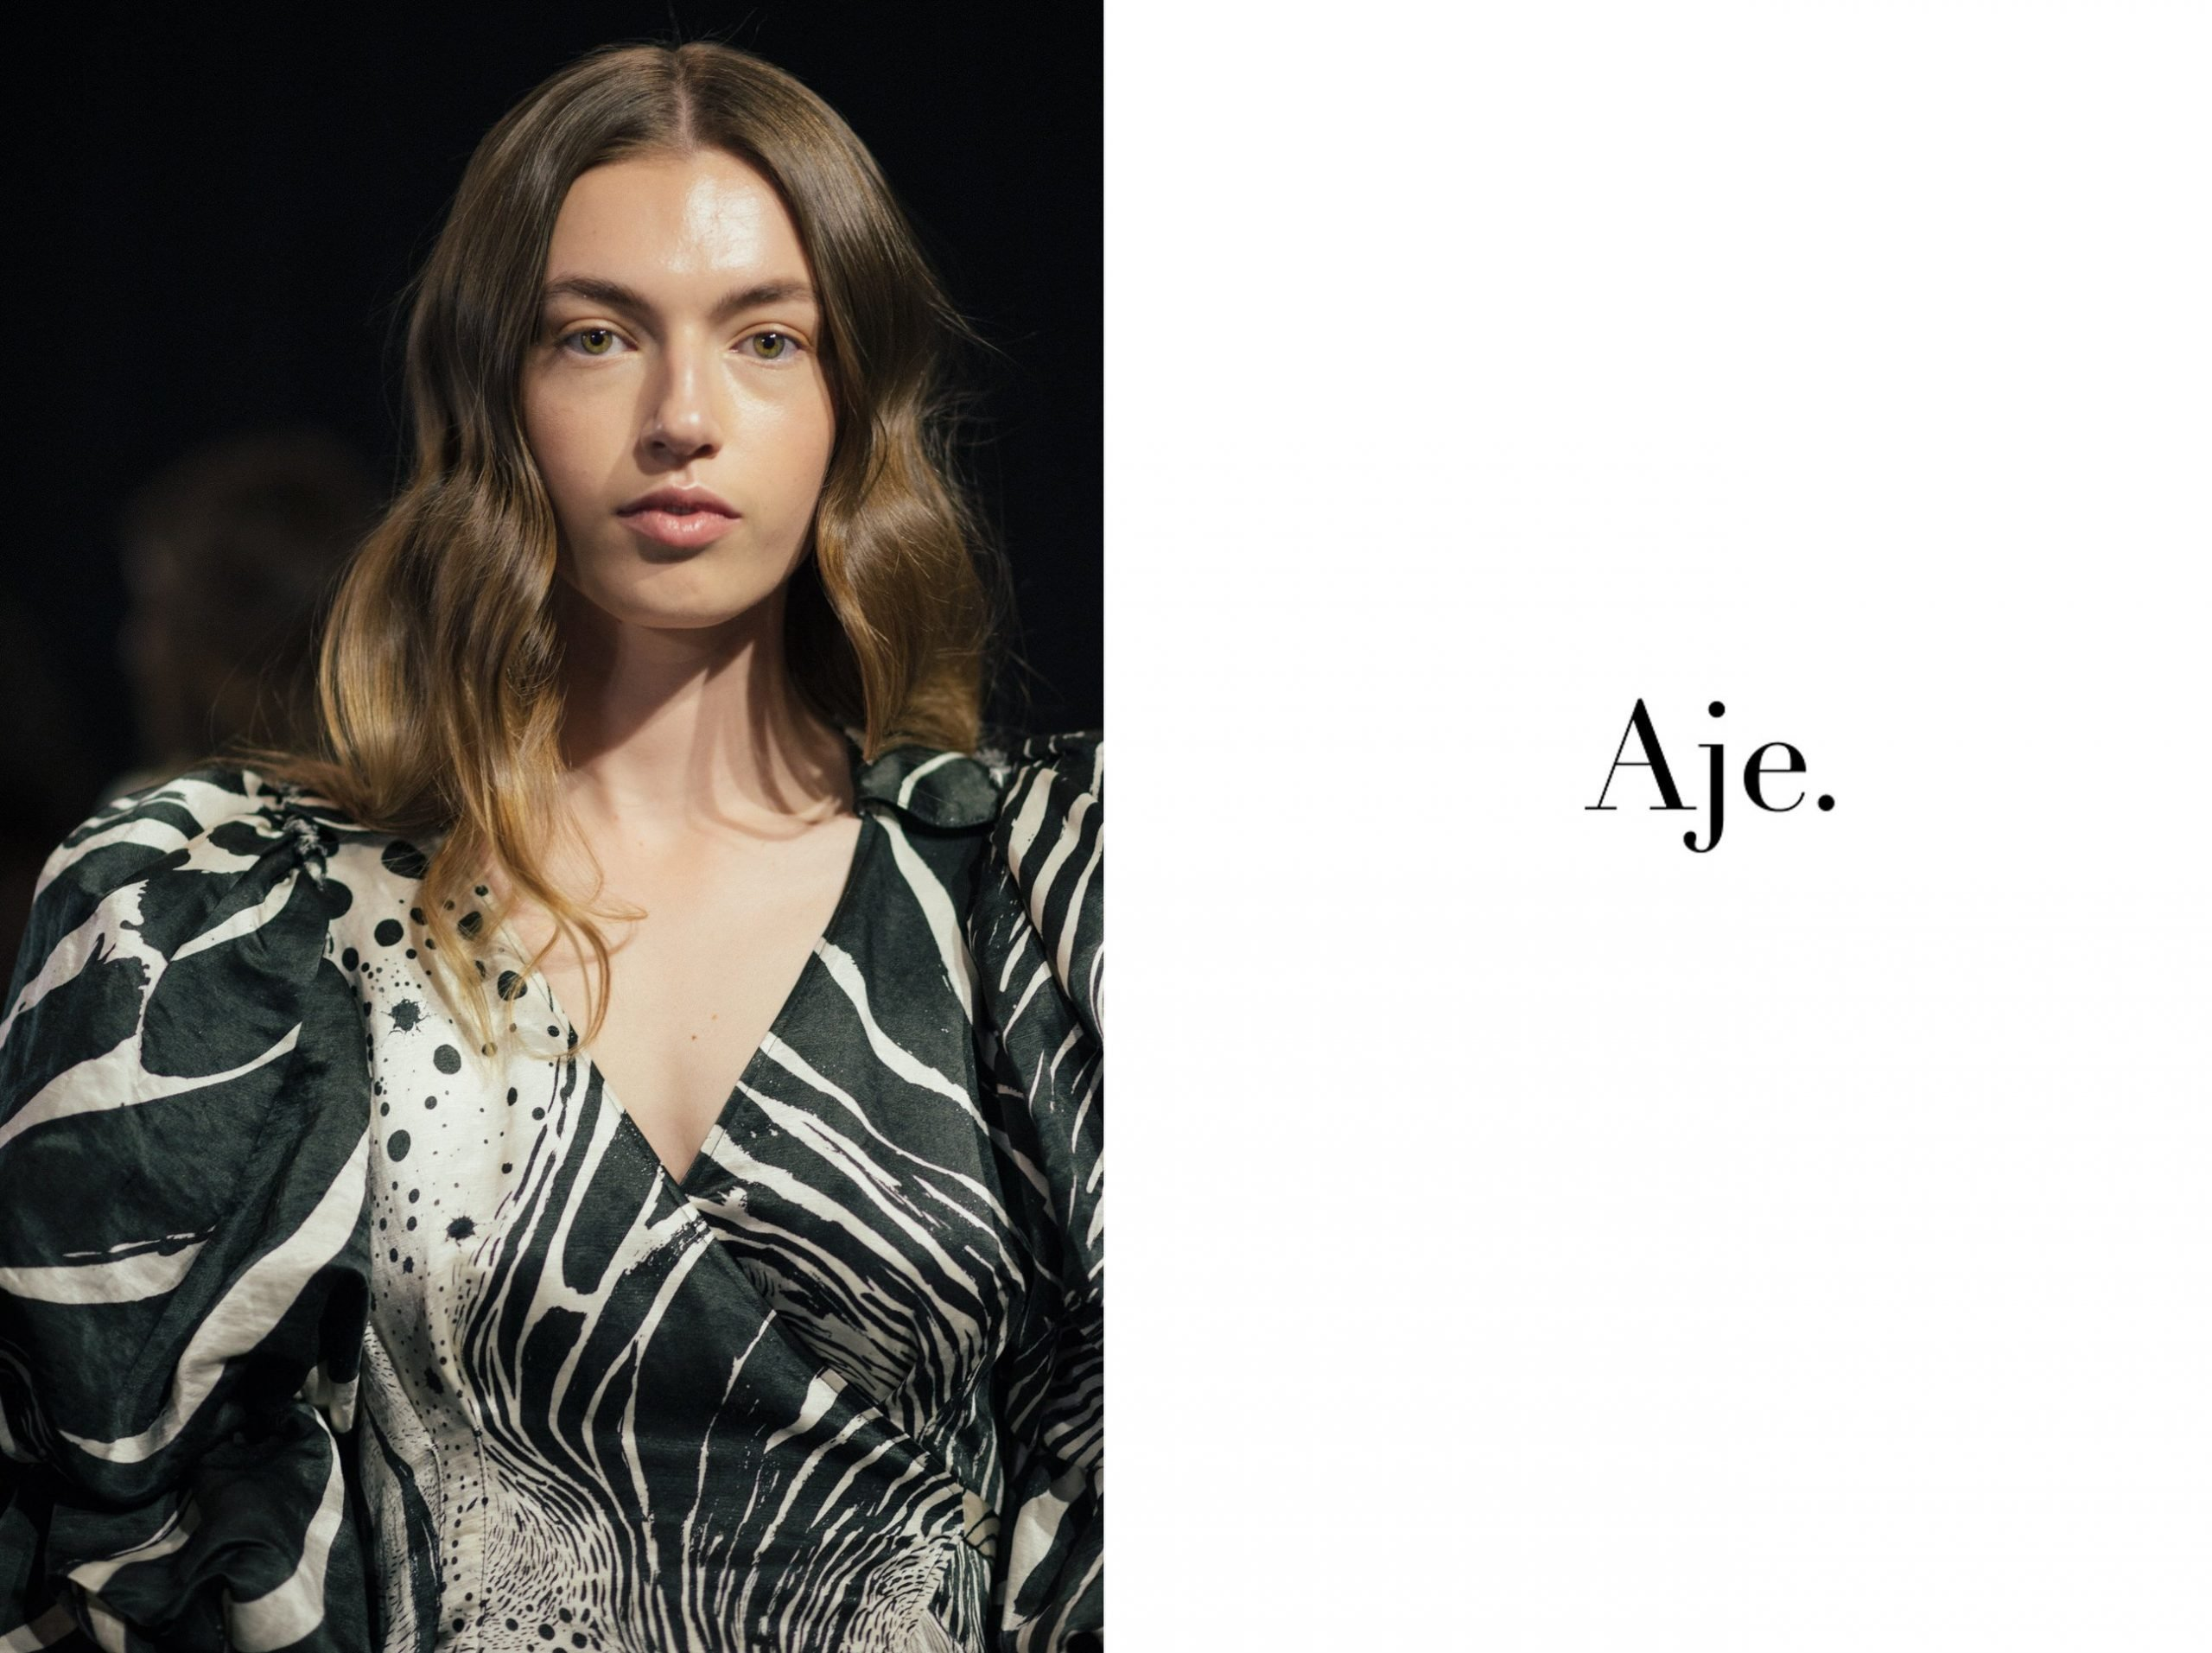 Aje Backstage at the 20th Telstra Perth Fashion Festival